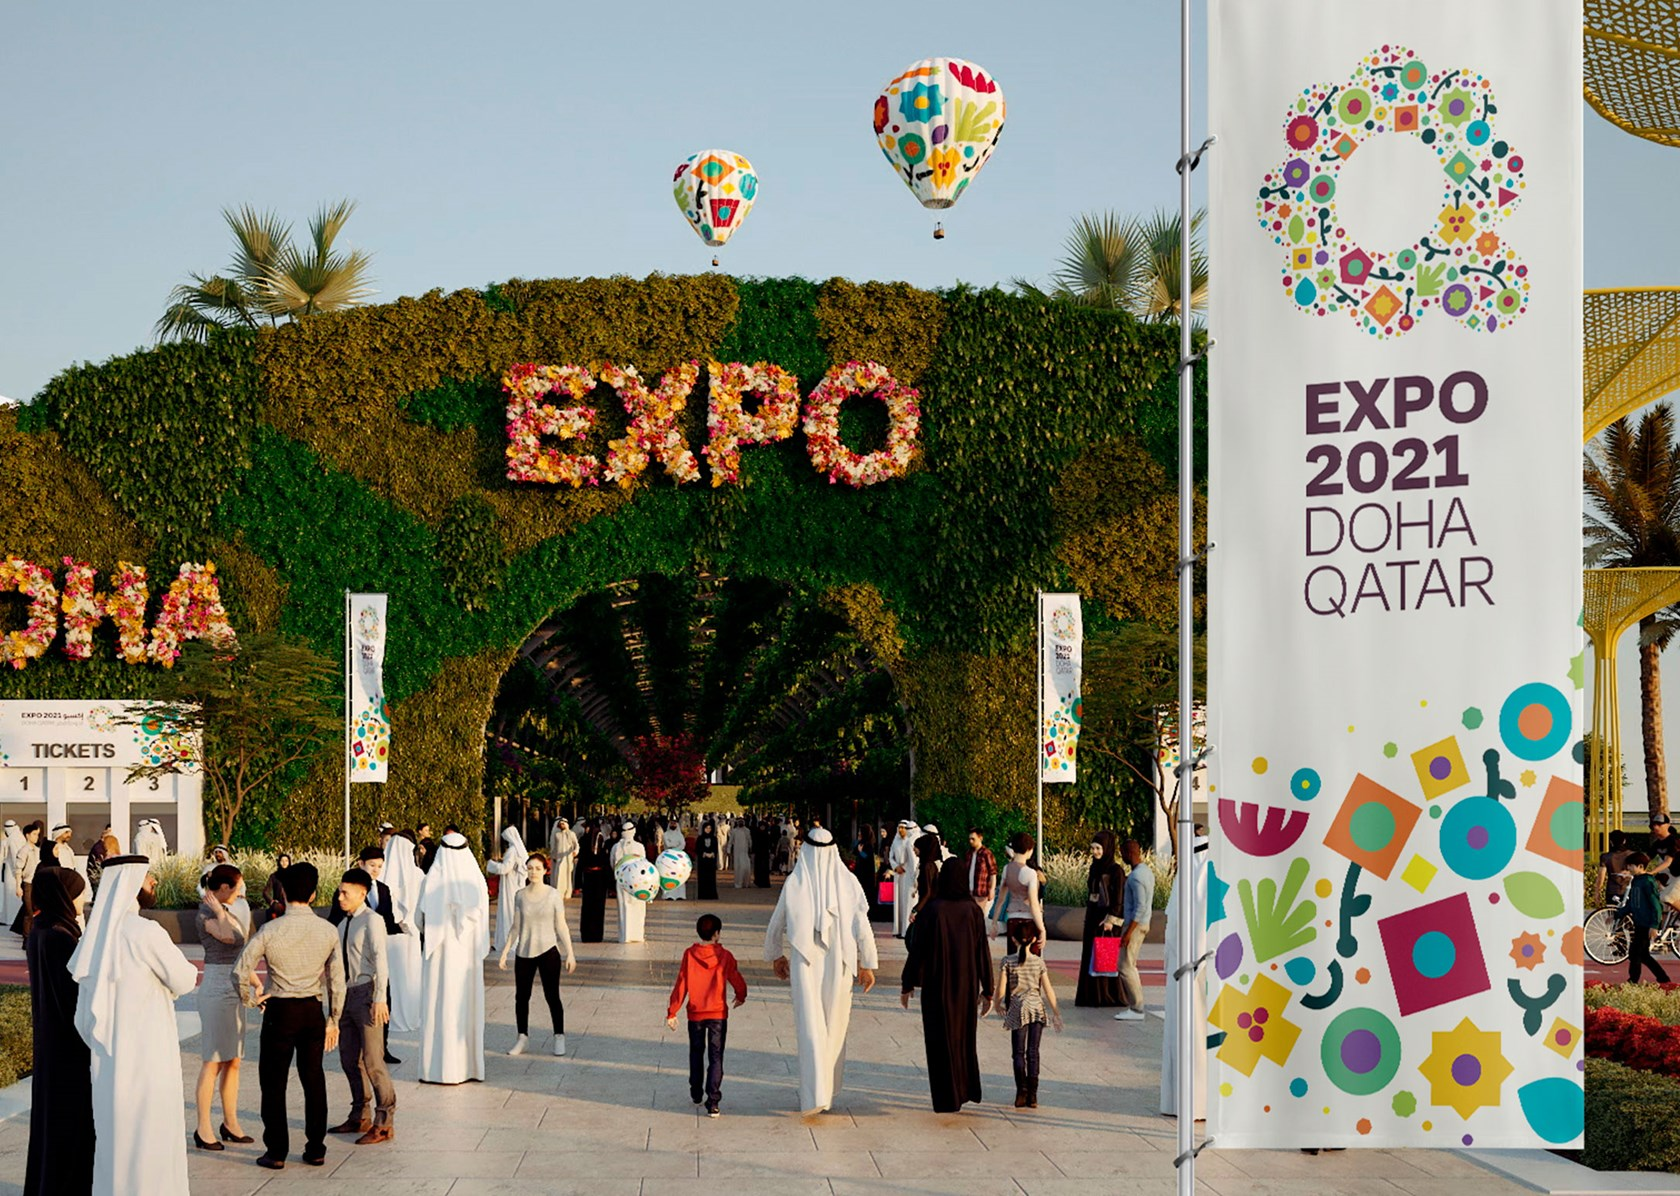 EXPO 2021 Doha Qatar - Green Desert, Better Environment